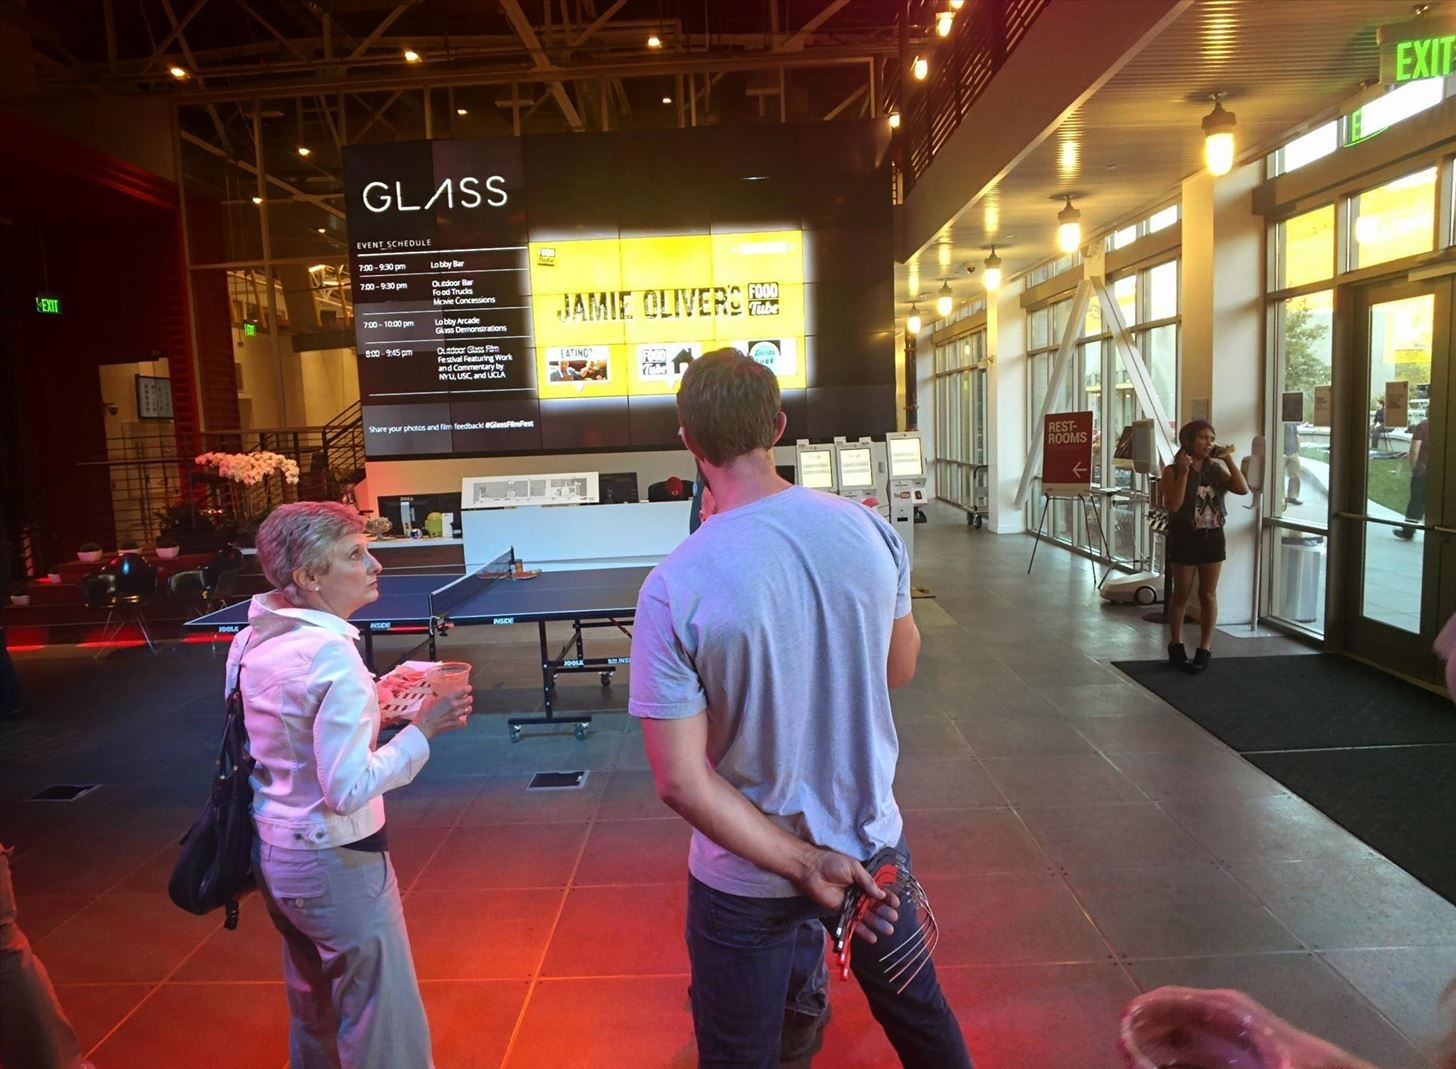 We Went to the Google Glass Film Festival—Don't Expect Glass-Made Movies Anytime Soon